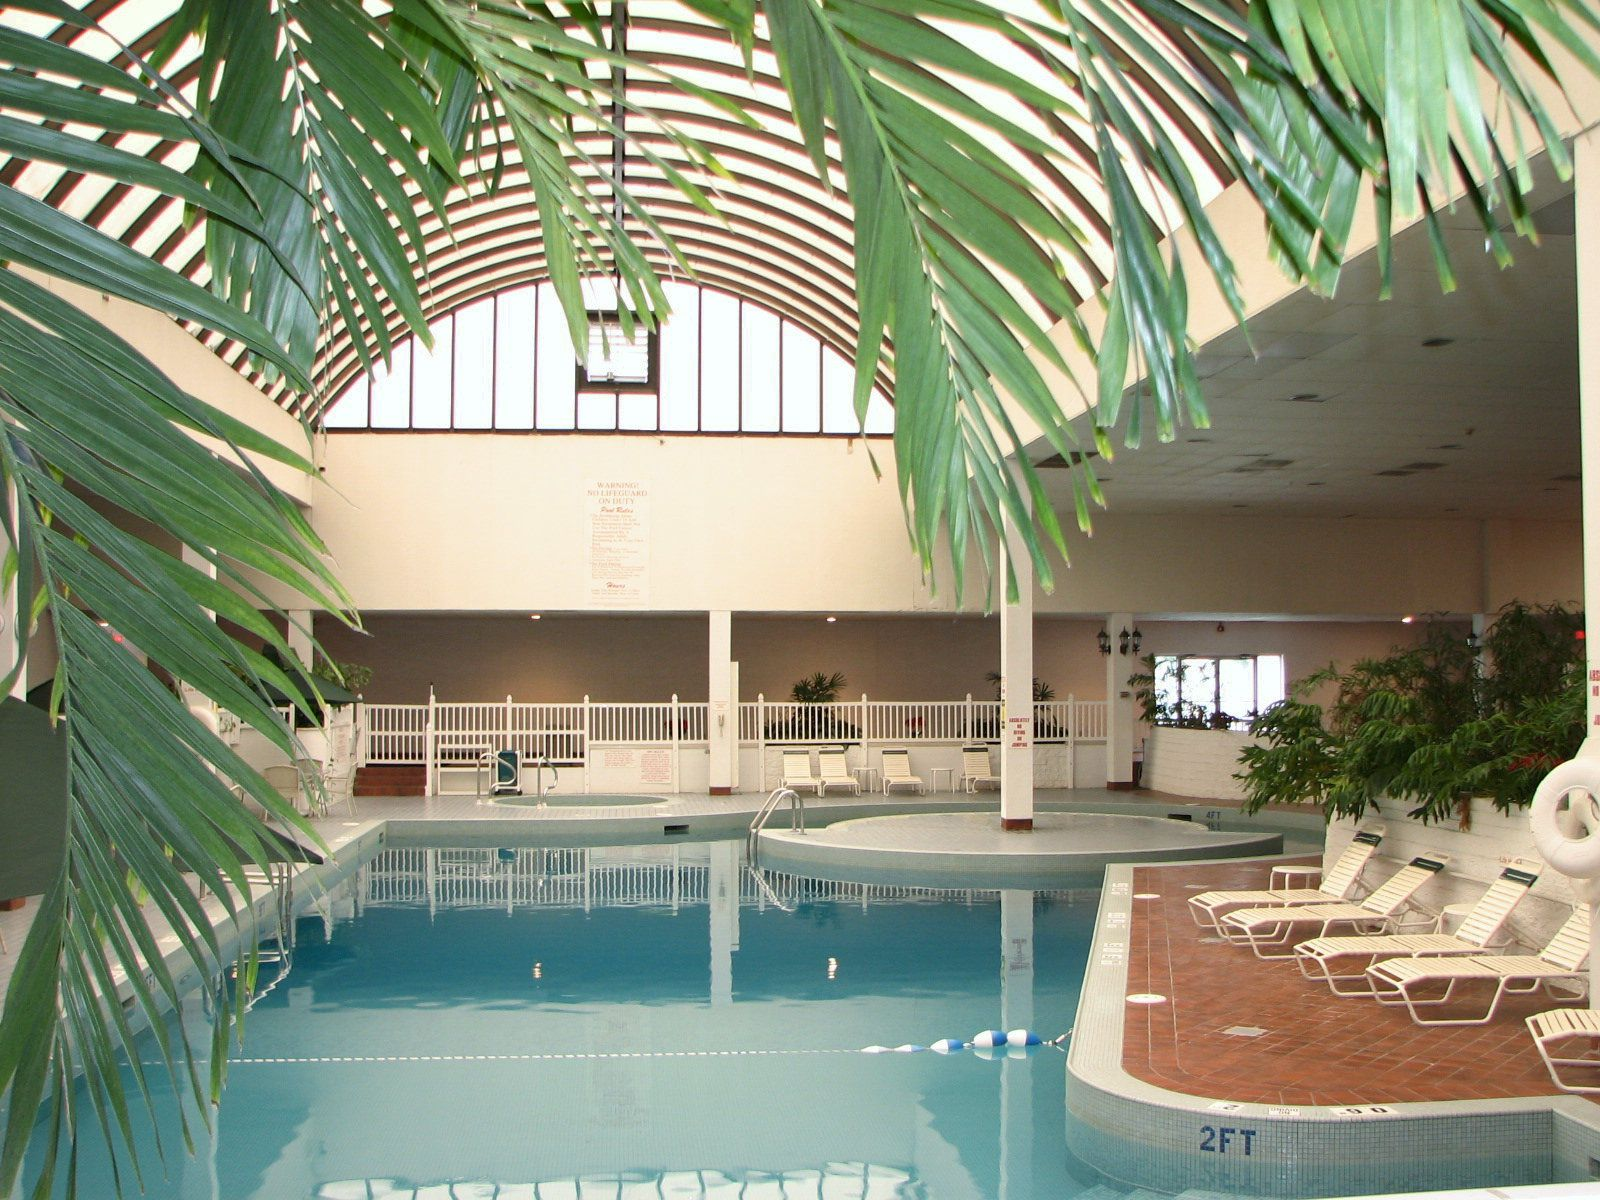 Hotel With Indoor Pool And Jacuzzi In Evansville Indiana Clarion Inn 4101 Hwy 41 N